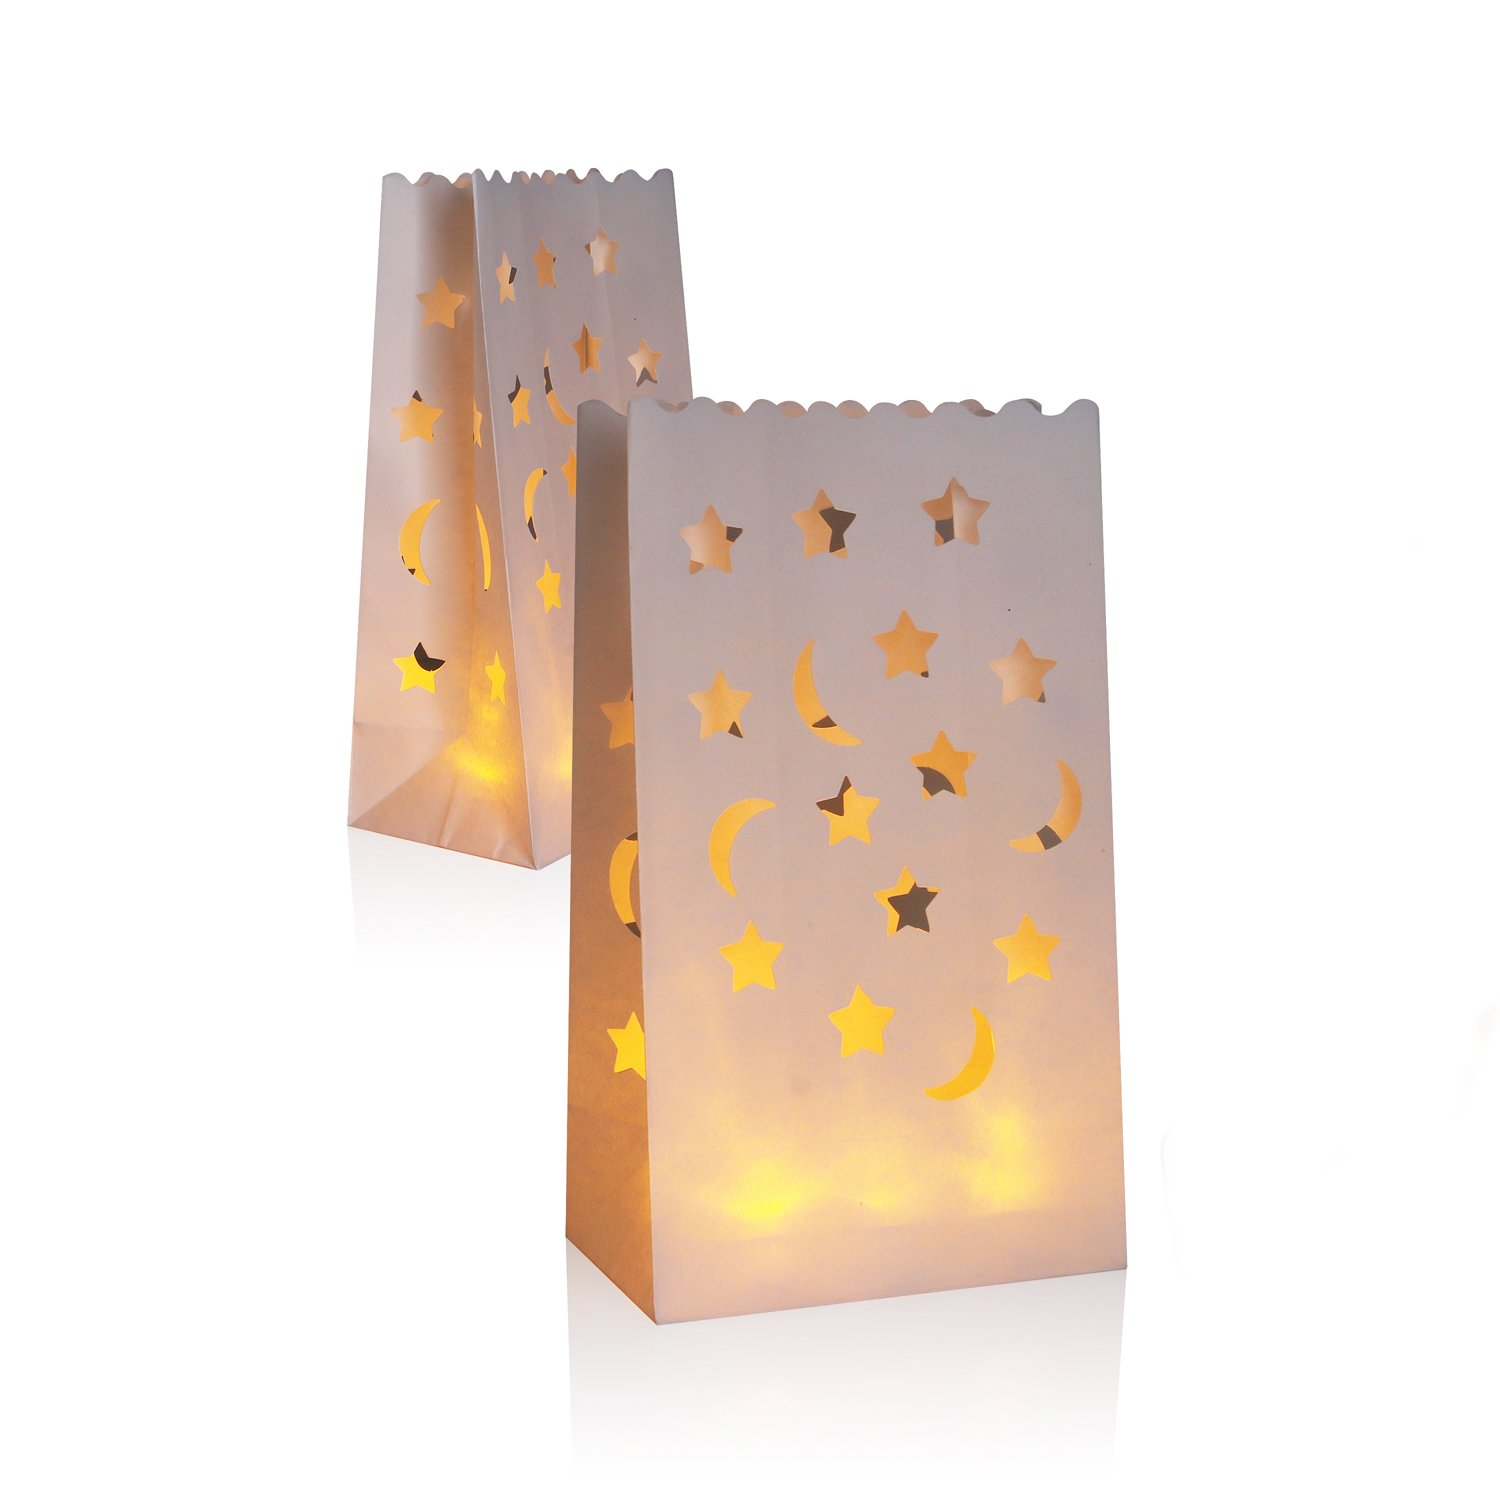 AceList 30 Packs Luminary Paper Lantern, Candle Tealight Tea Light Bag Bags - Flame Resistant Paper for BBQ Party Wedding Reception Party and Event Decor by AceList